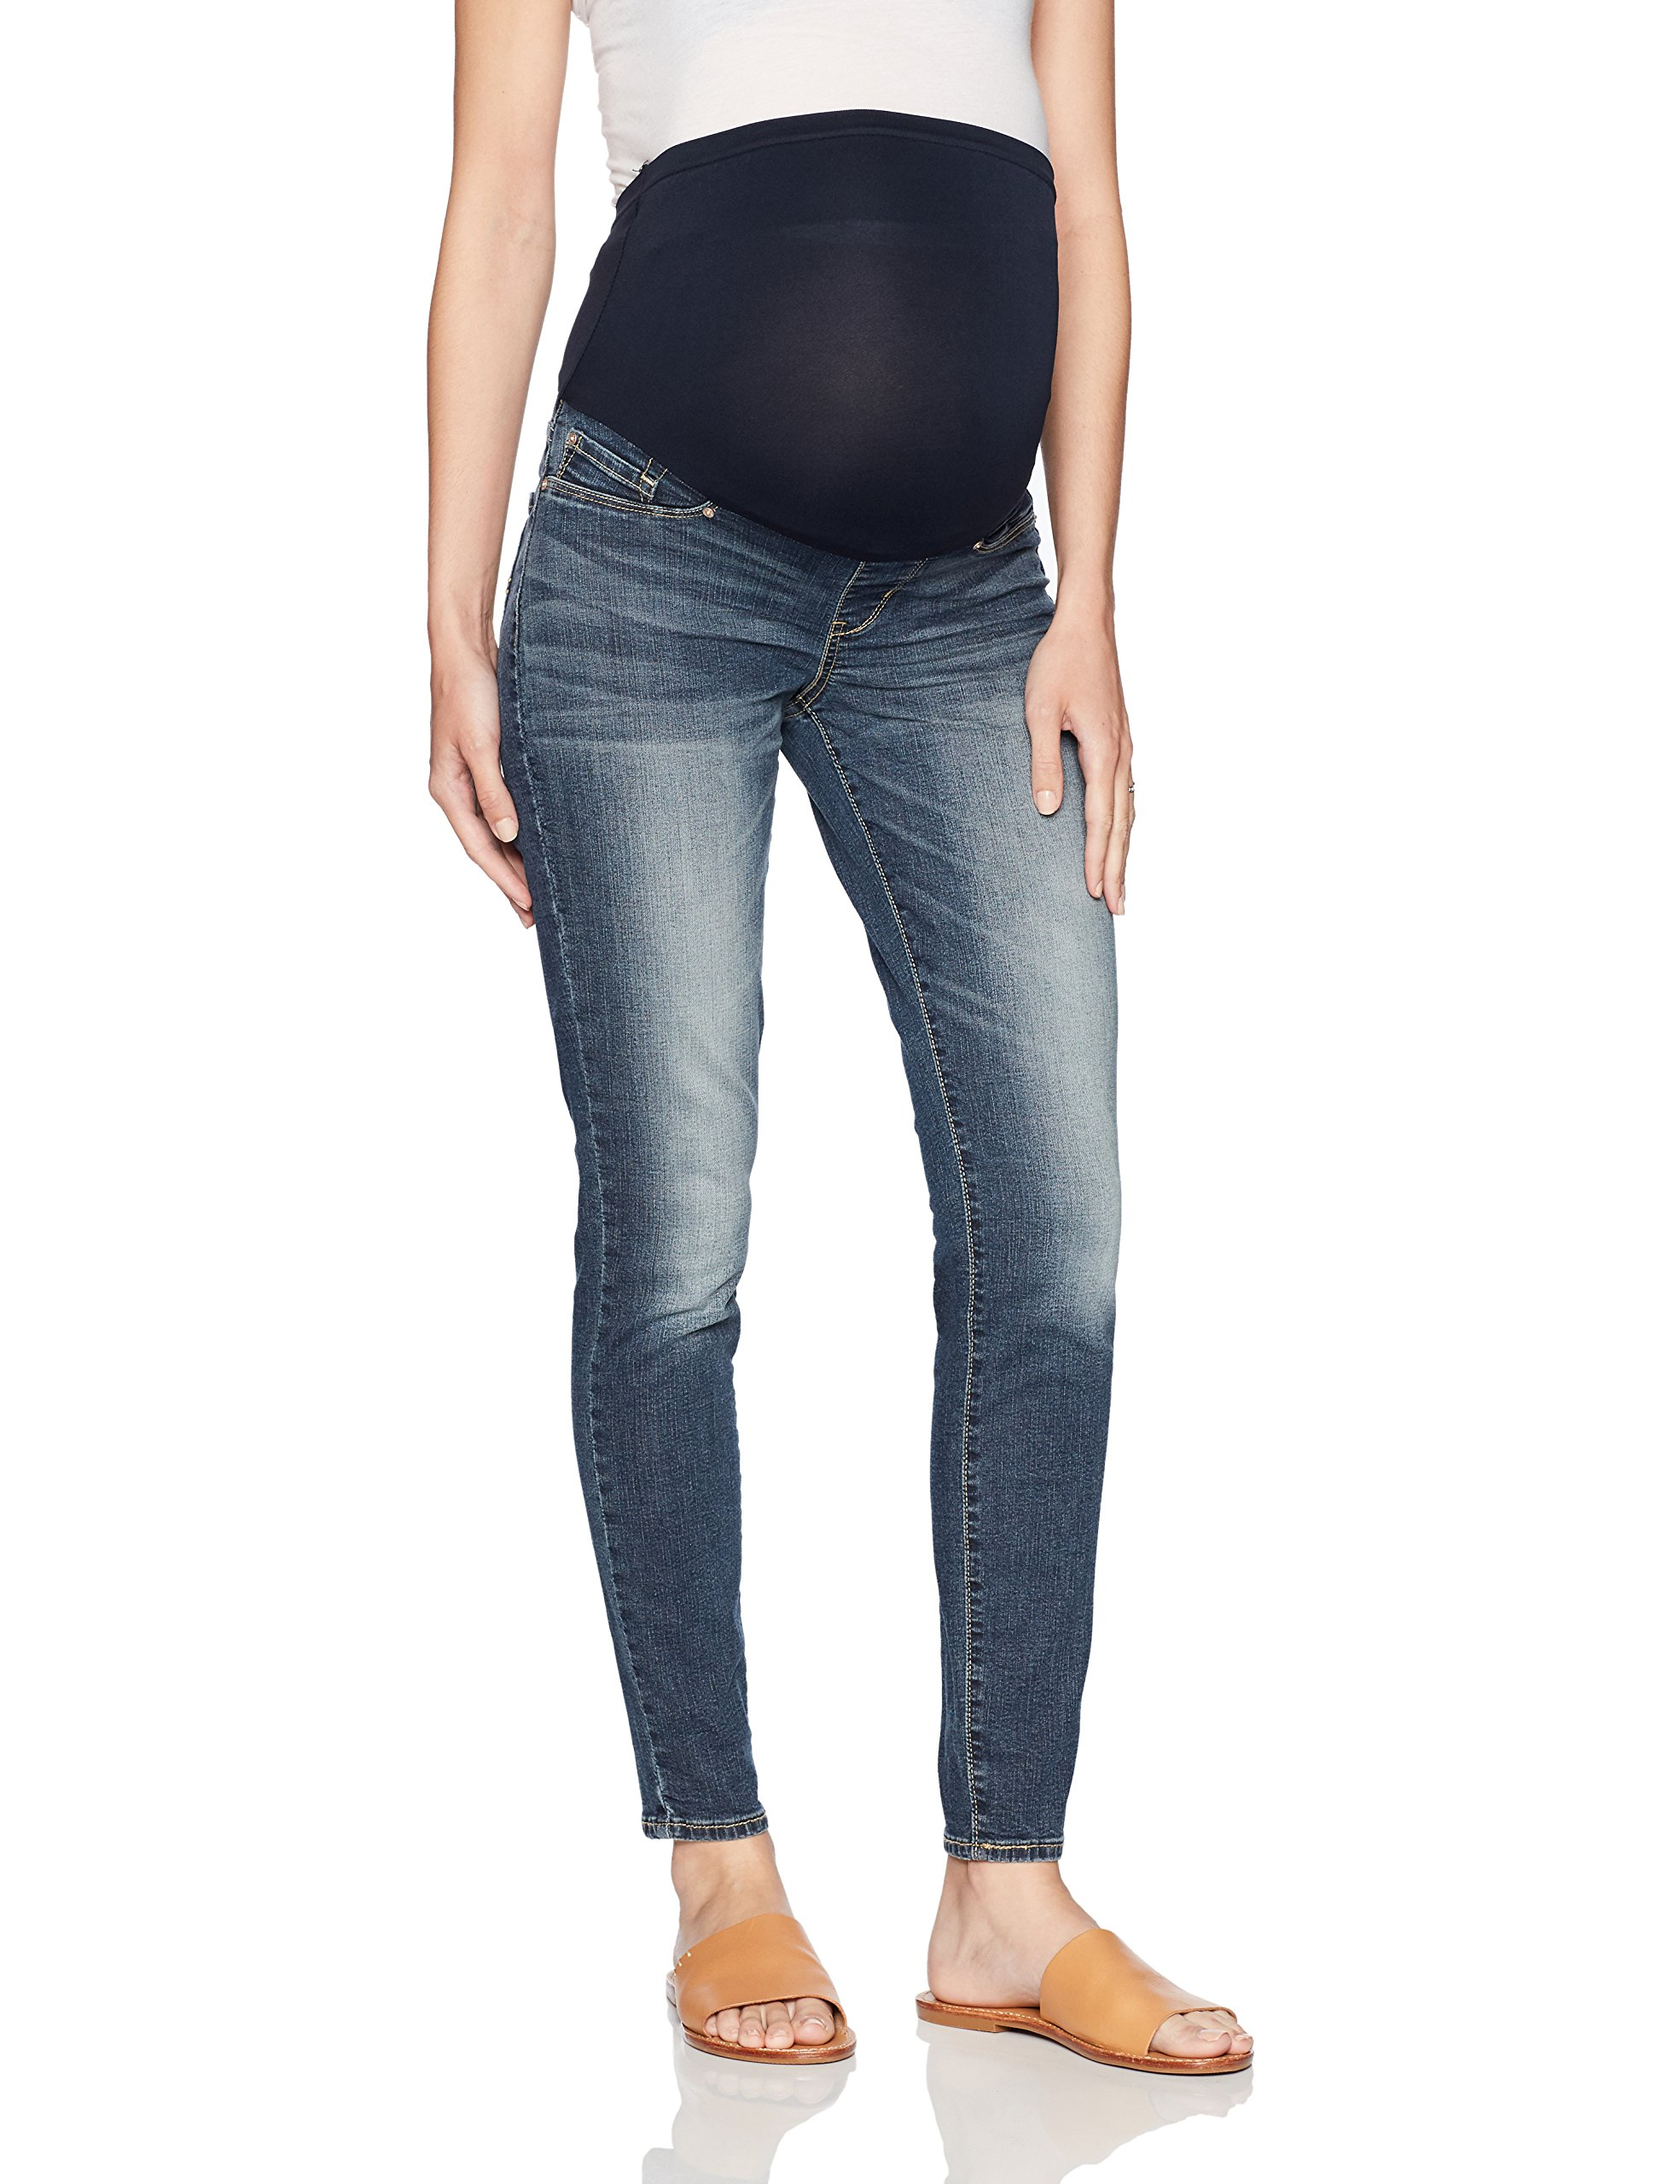 Signature by Levi Strauss & Co. Gold Label Women's Maternity Skinny Jeans, Bombshell, Medium